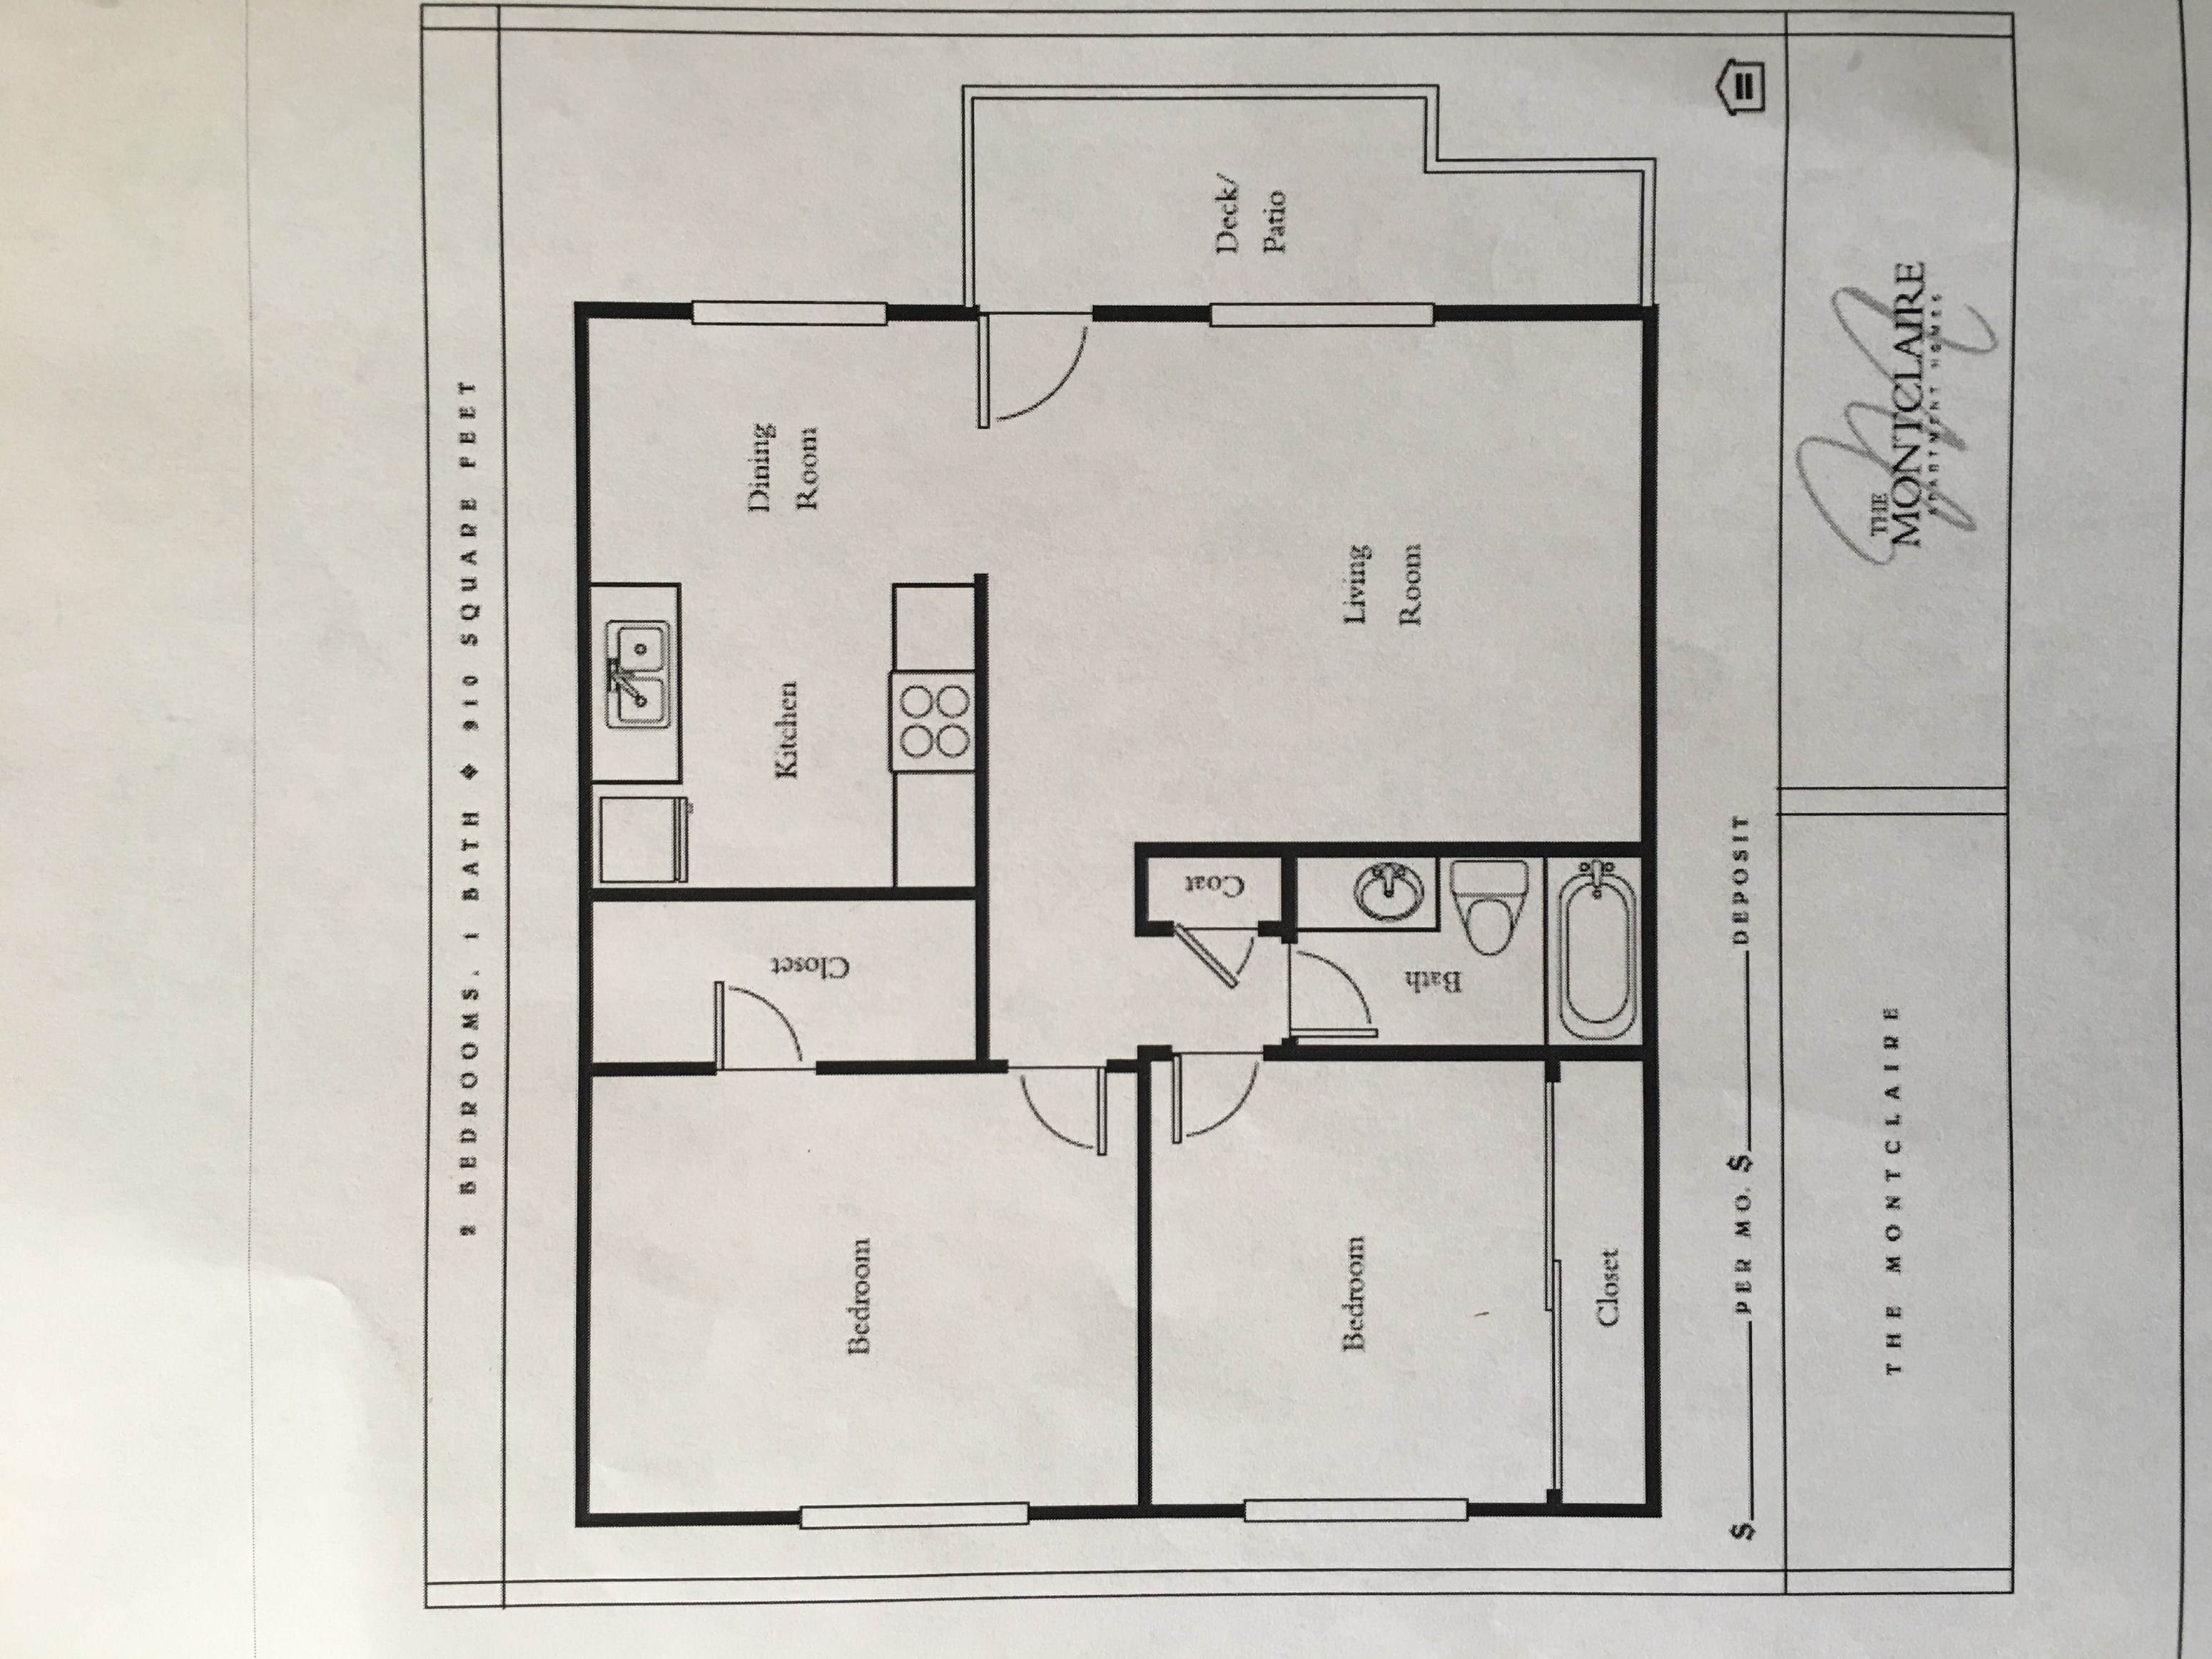 $2633 2br 950ft2 apartment for rent close to downtown